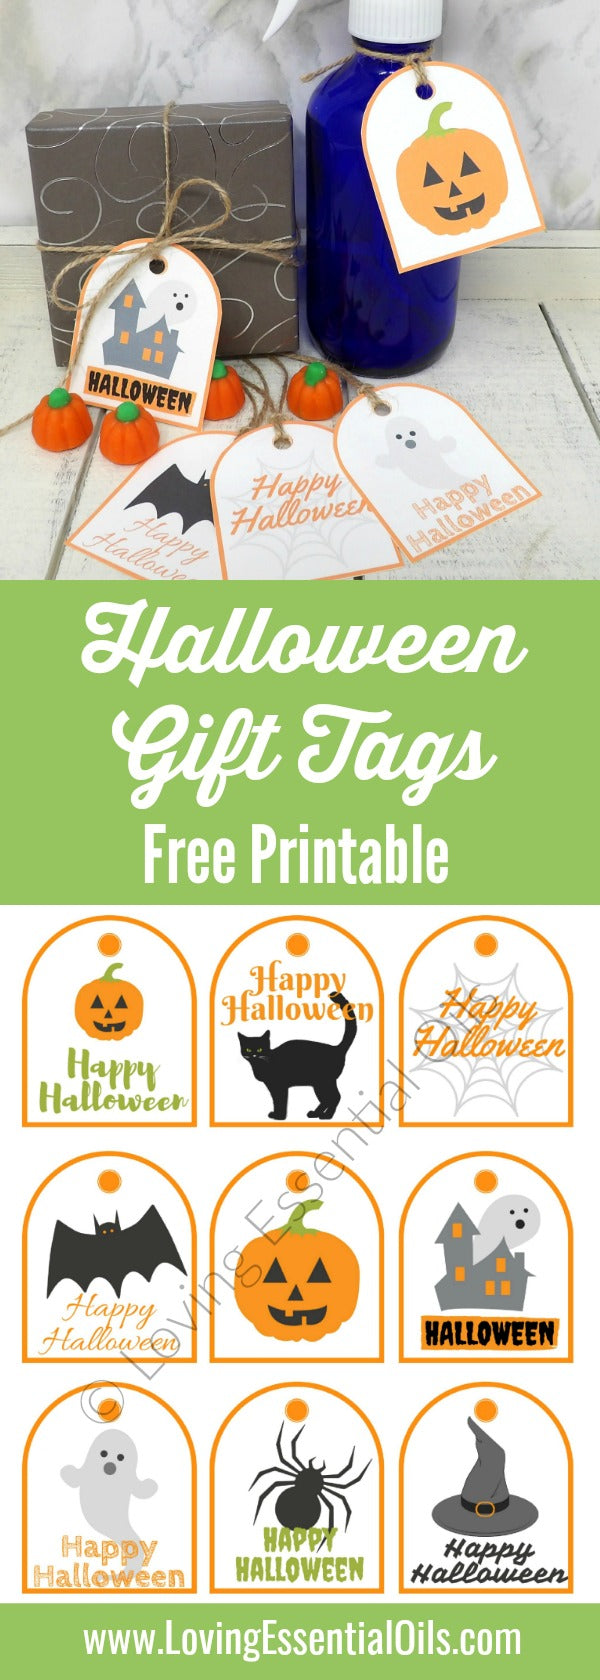 picture about Free Printable Halloween Tags called Free of charge Printable Halloween Present Tags Loving Very important Oils